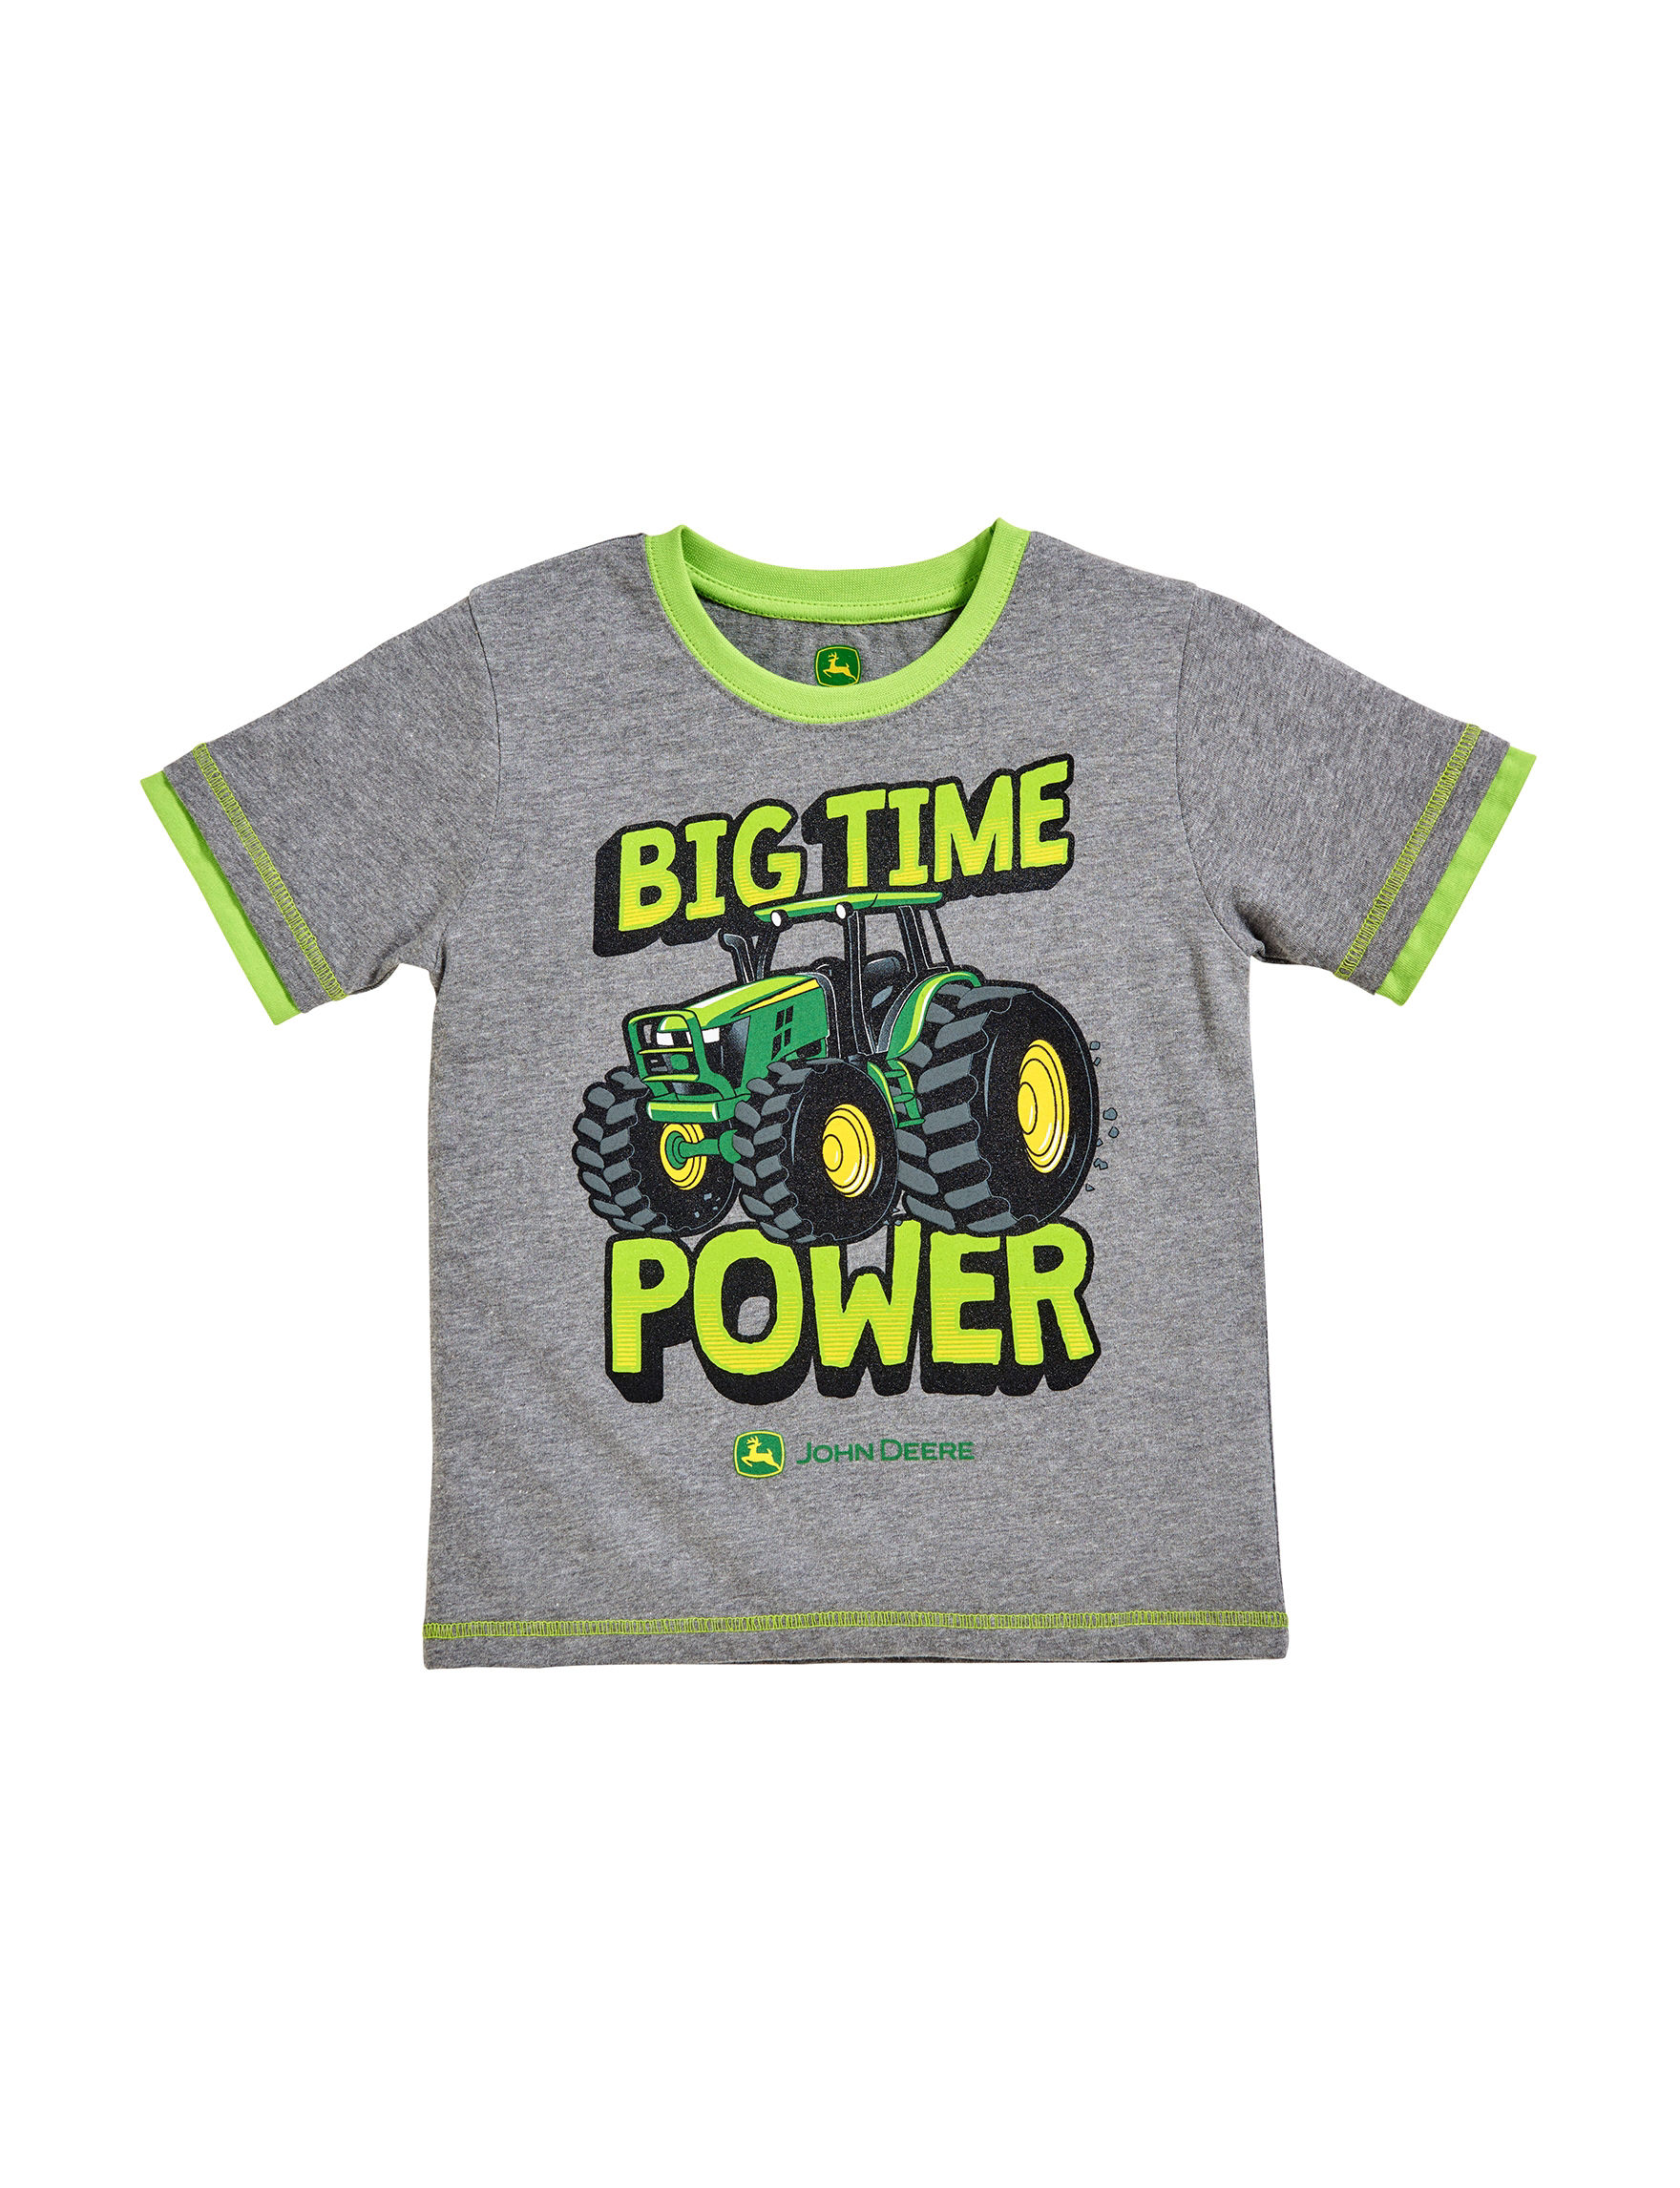 John Deere Big Time Power T-shirt – Baby 12-24 Mos. | Stage Stores